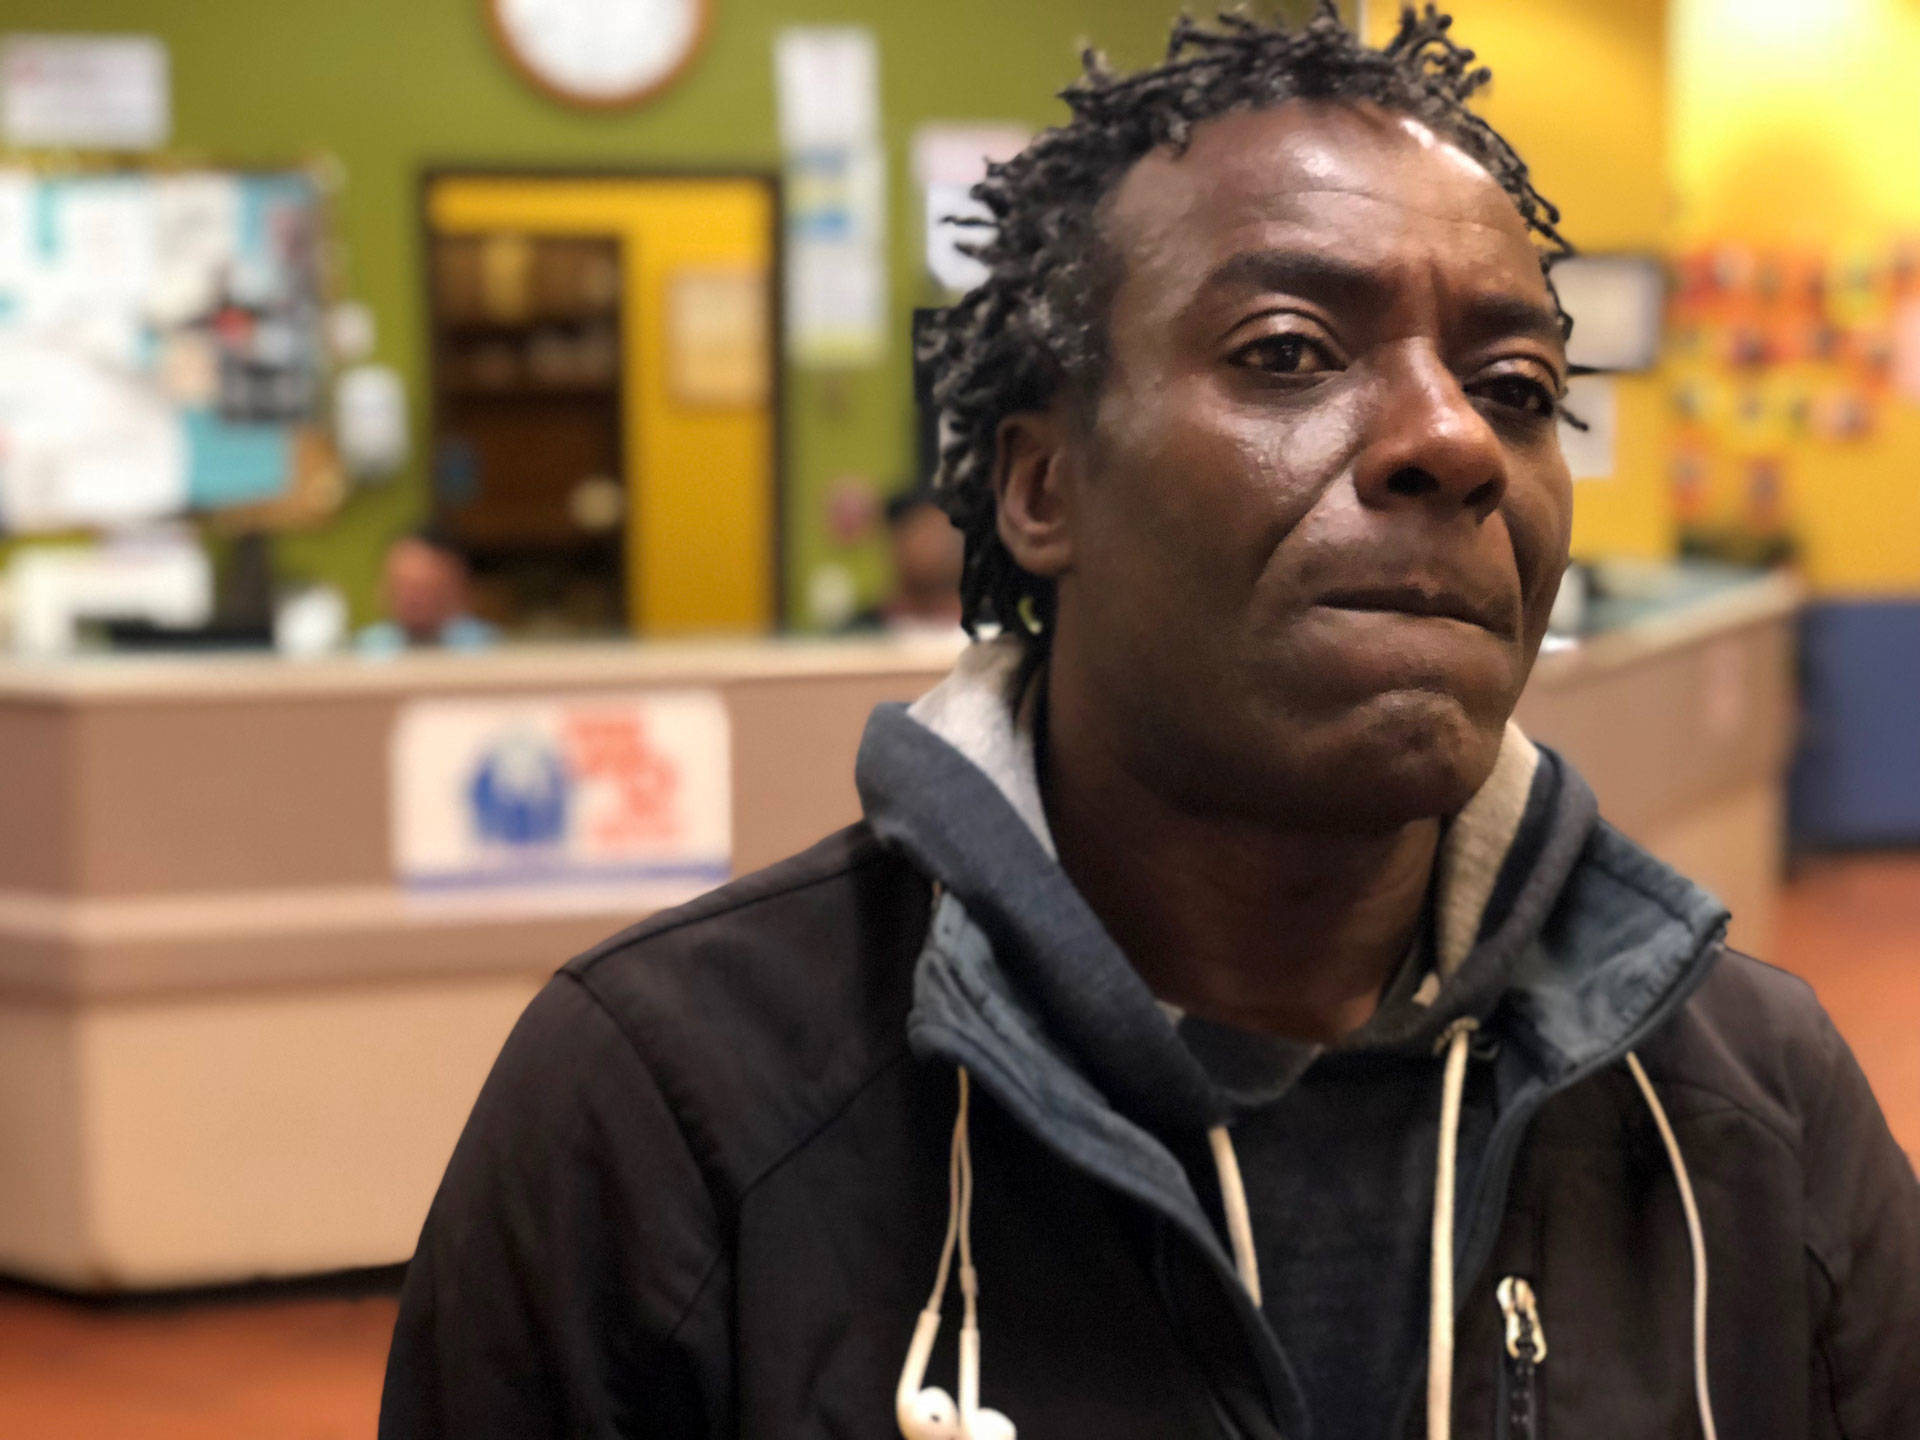 Sean Kayode, at the Next Door homeless shelter in San Francisco on July 26, 2018. Kayode is suing the city, saying he lost his means of food-delivery employment and his home when his car was impounded in March — for having too many parking tickets. David Gorn/CALmatters